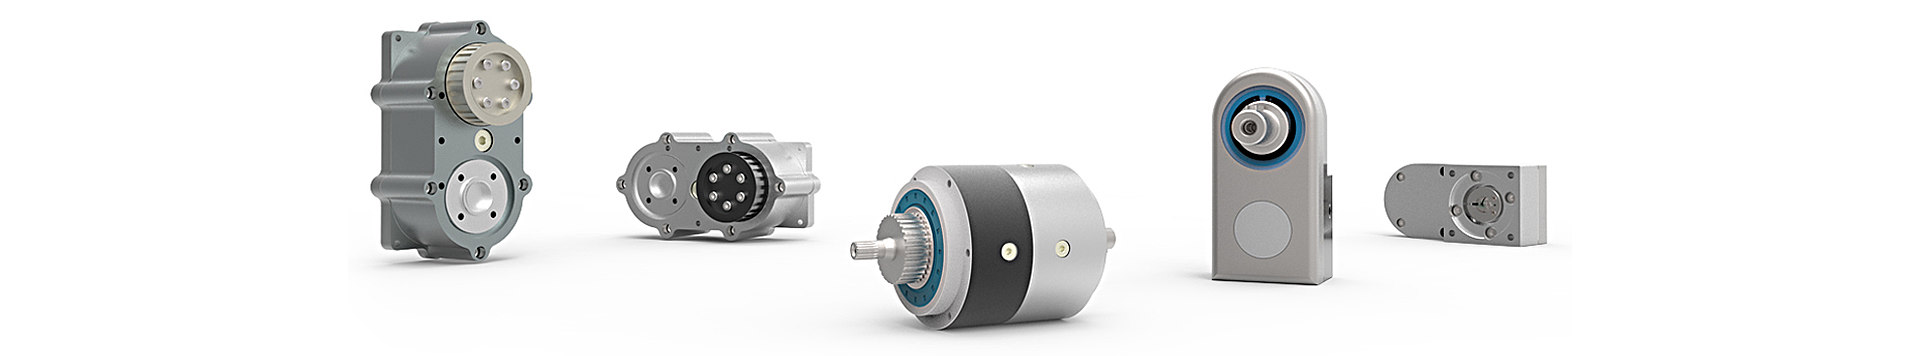 Five different examples of tailor-made gearbox solutions